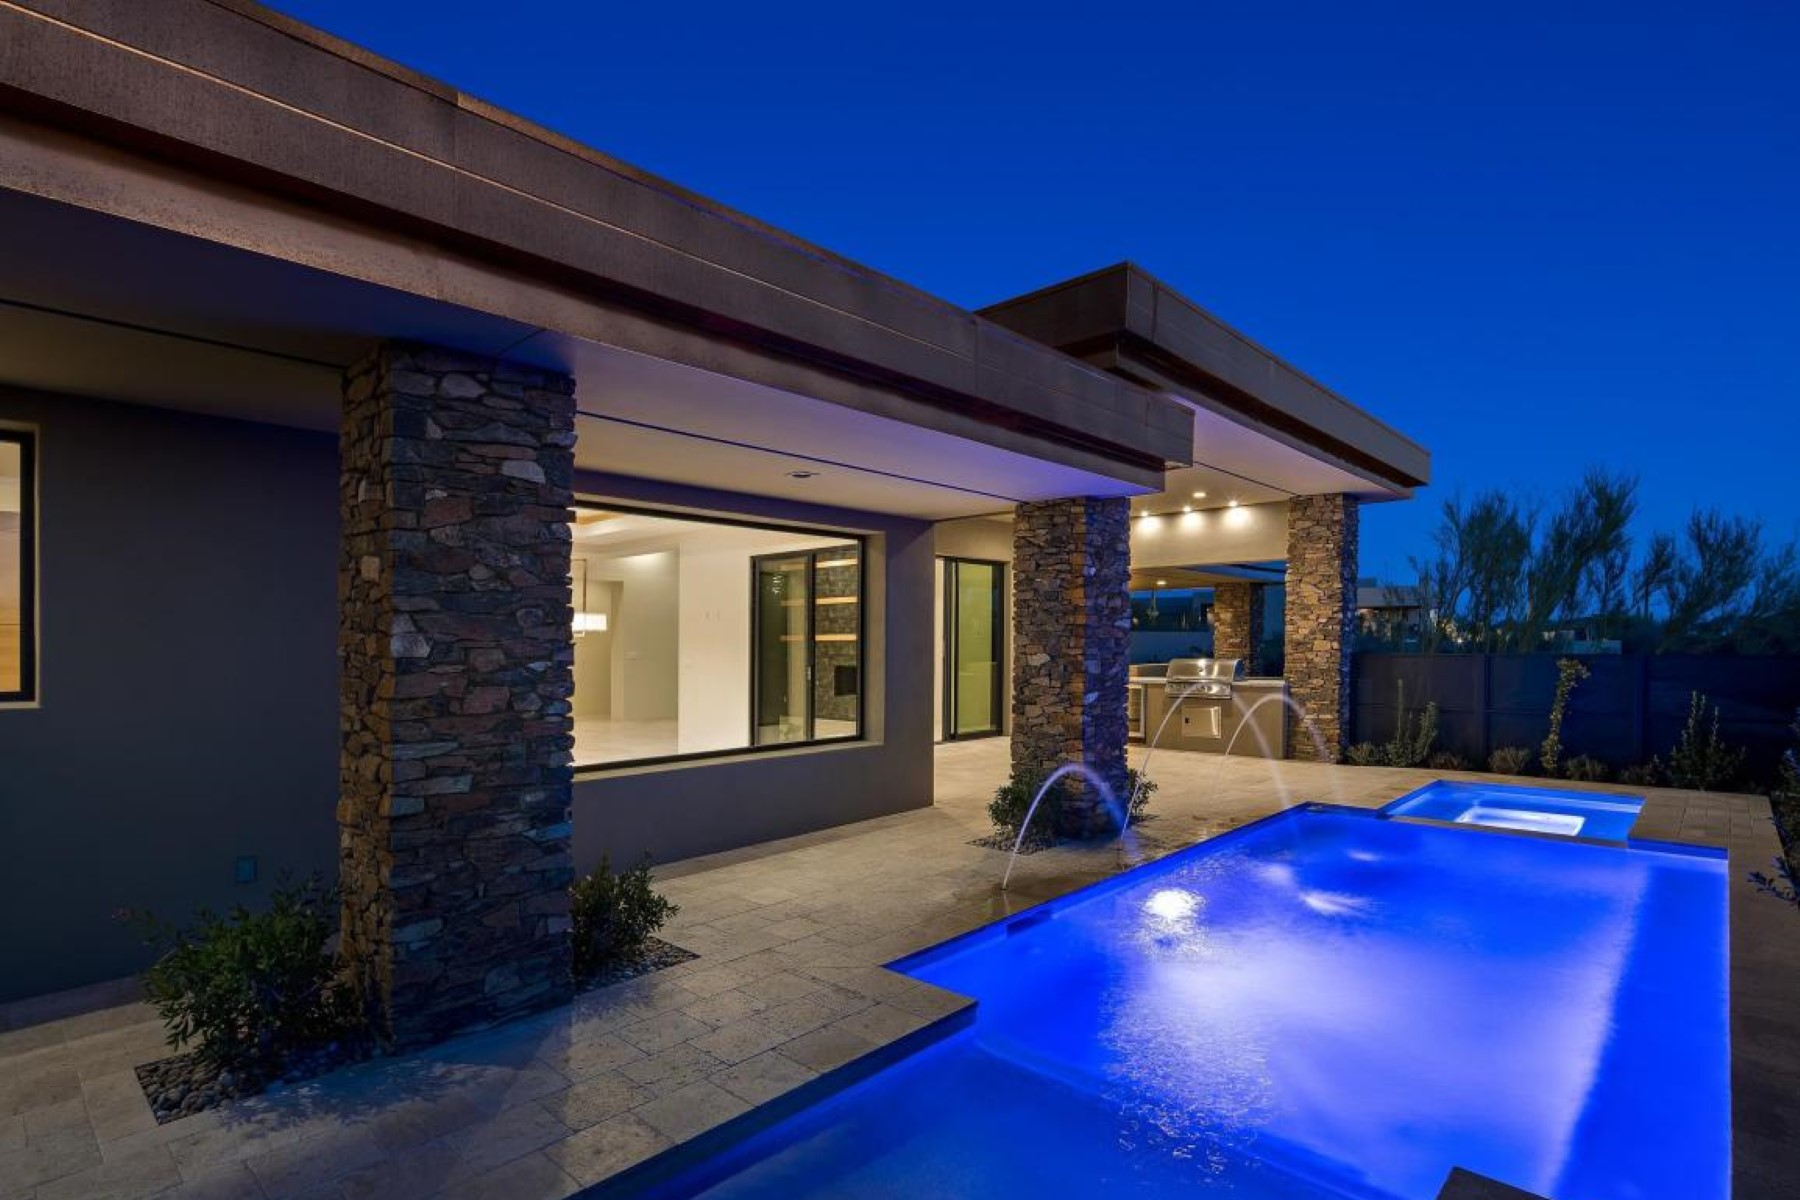 Single Family Home for Sale at New Contemporary Home 39593 N 104TH ST, Scottsdale, Arizona, 85262 United States